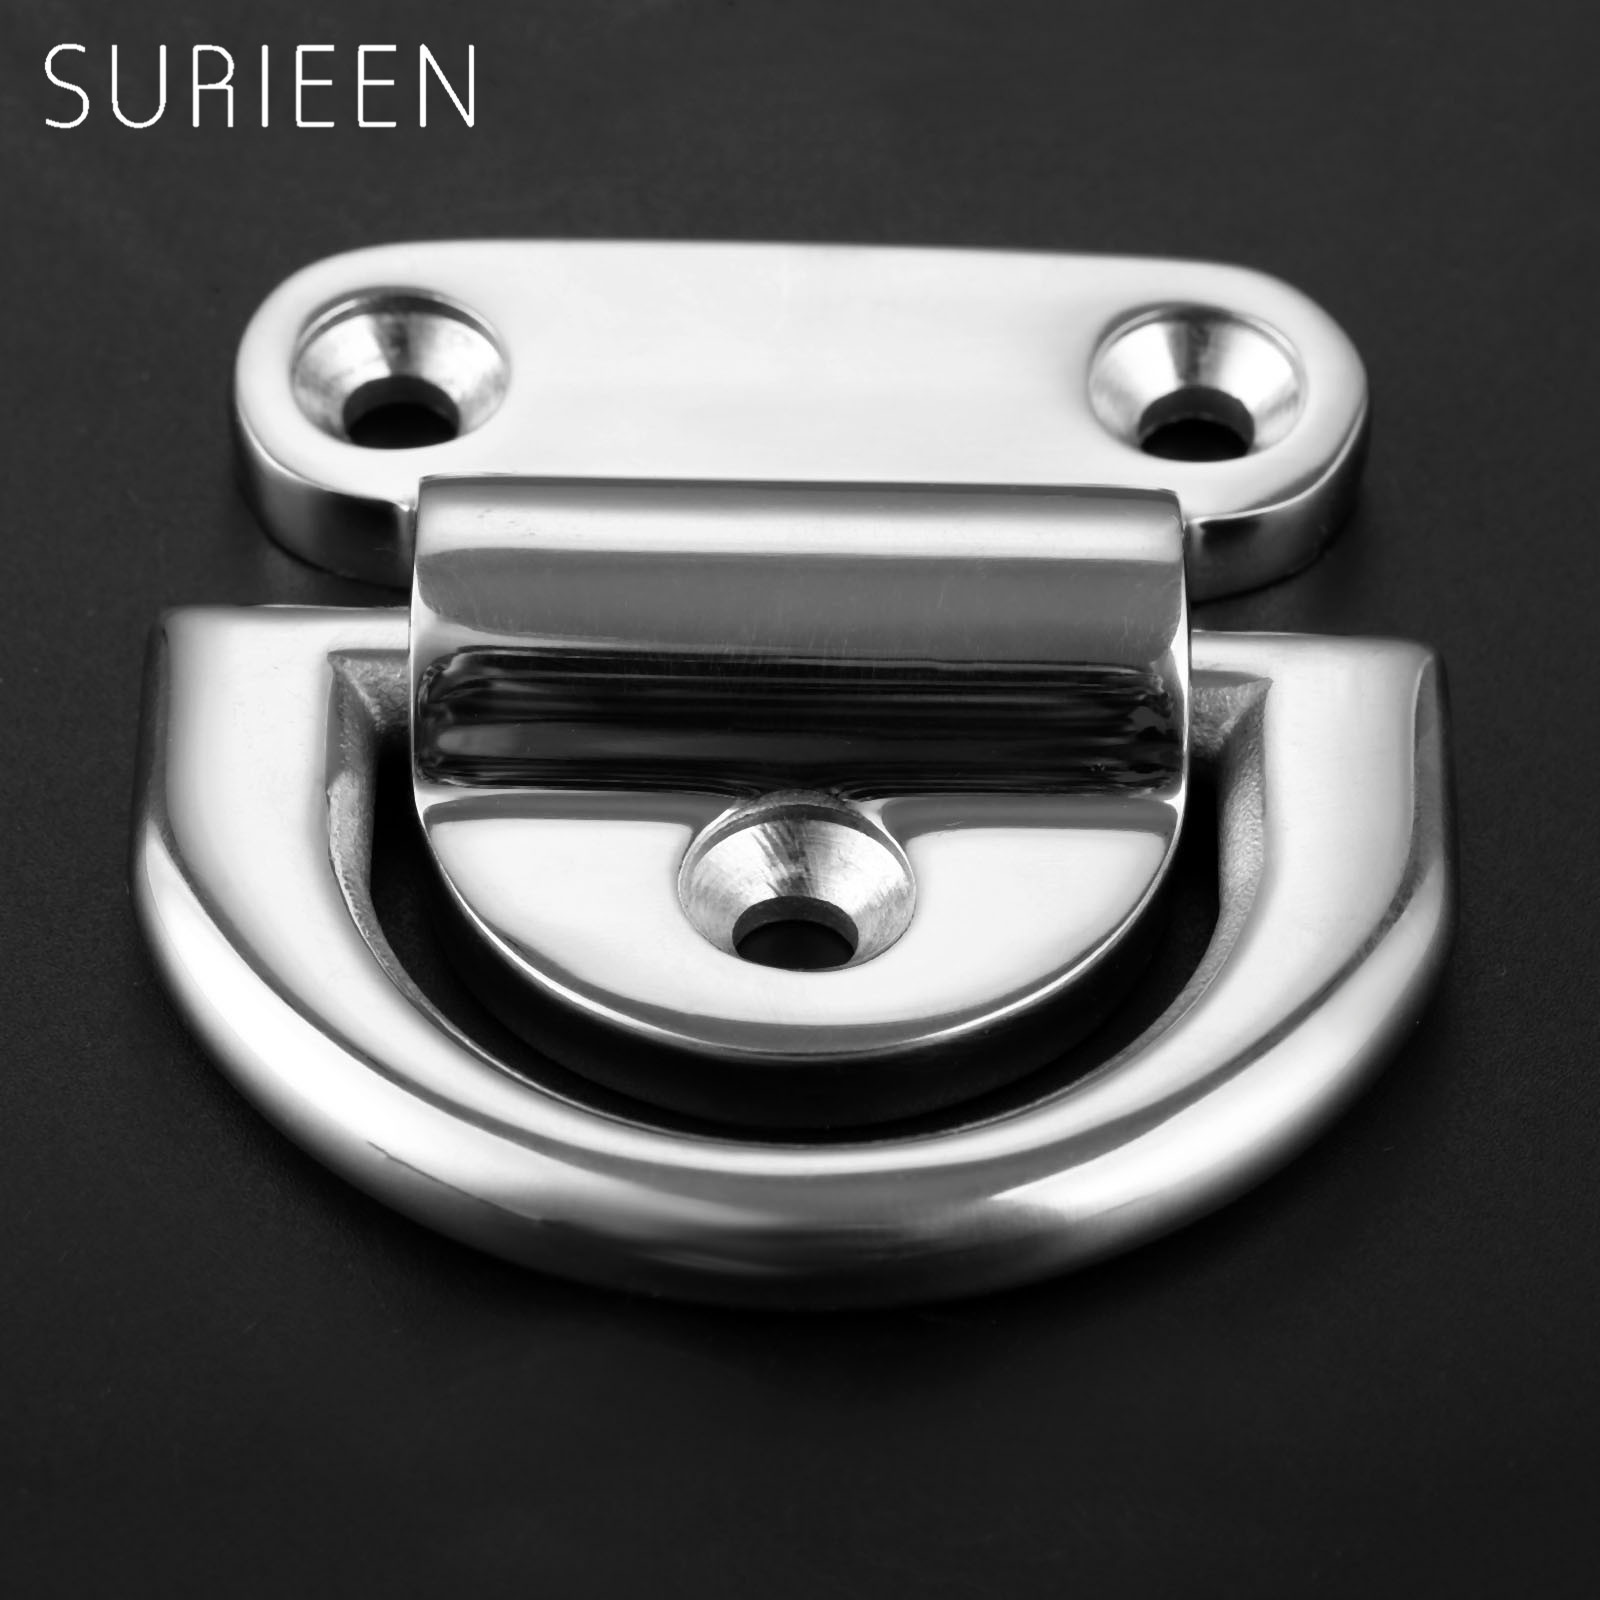 SURIEEN Marine Boat Yacht Stainless Steel Folding Pad Eye Deck Lashing Ring D-ring With Cleat Plate Boat Hardware Accessories